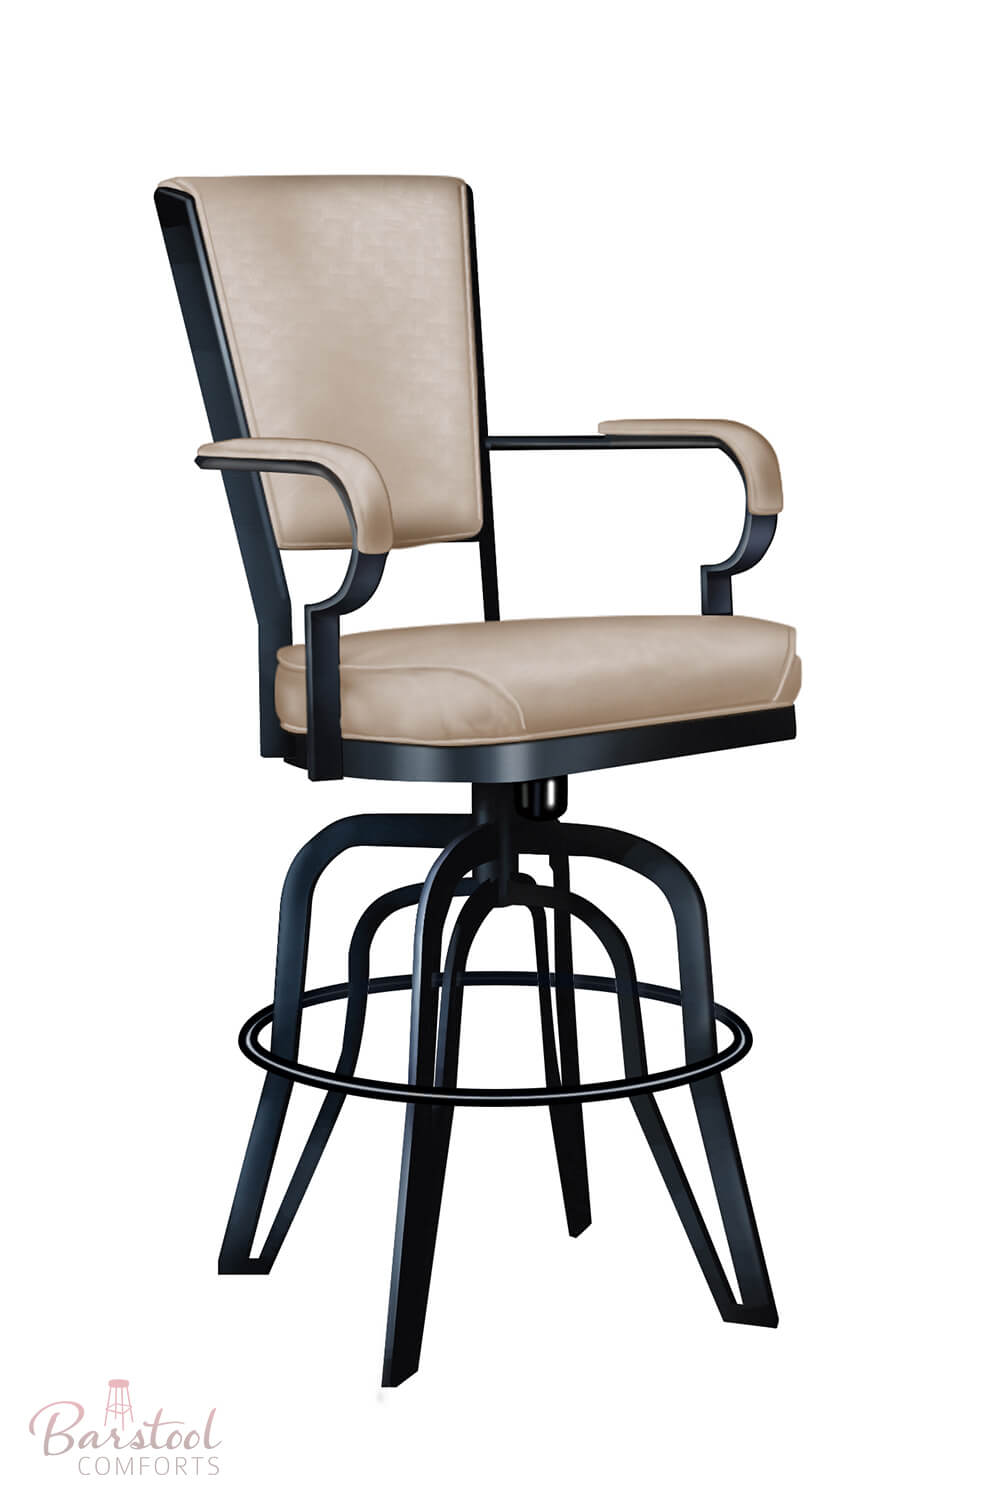 Lisa Furniture's #2545 Tilt Swivel Stool with Arms in Black Finish and Brown Fabric